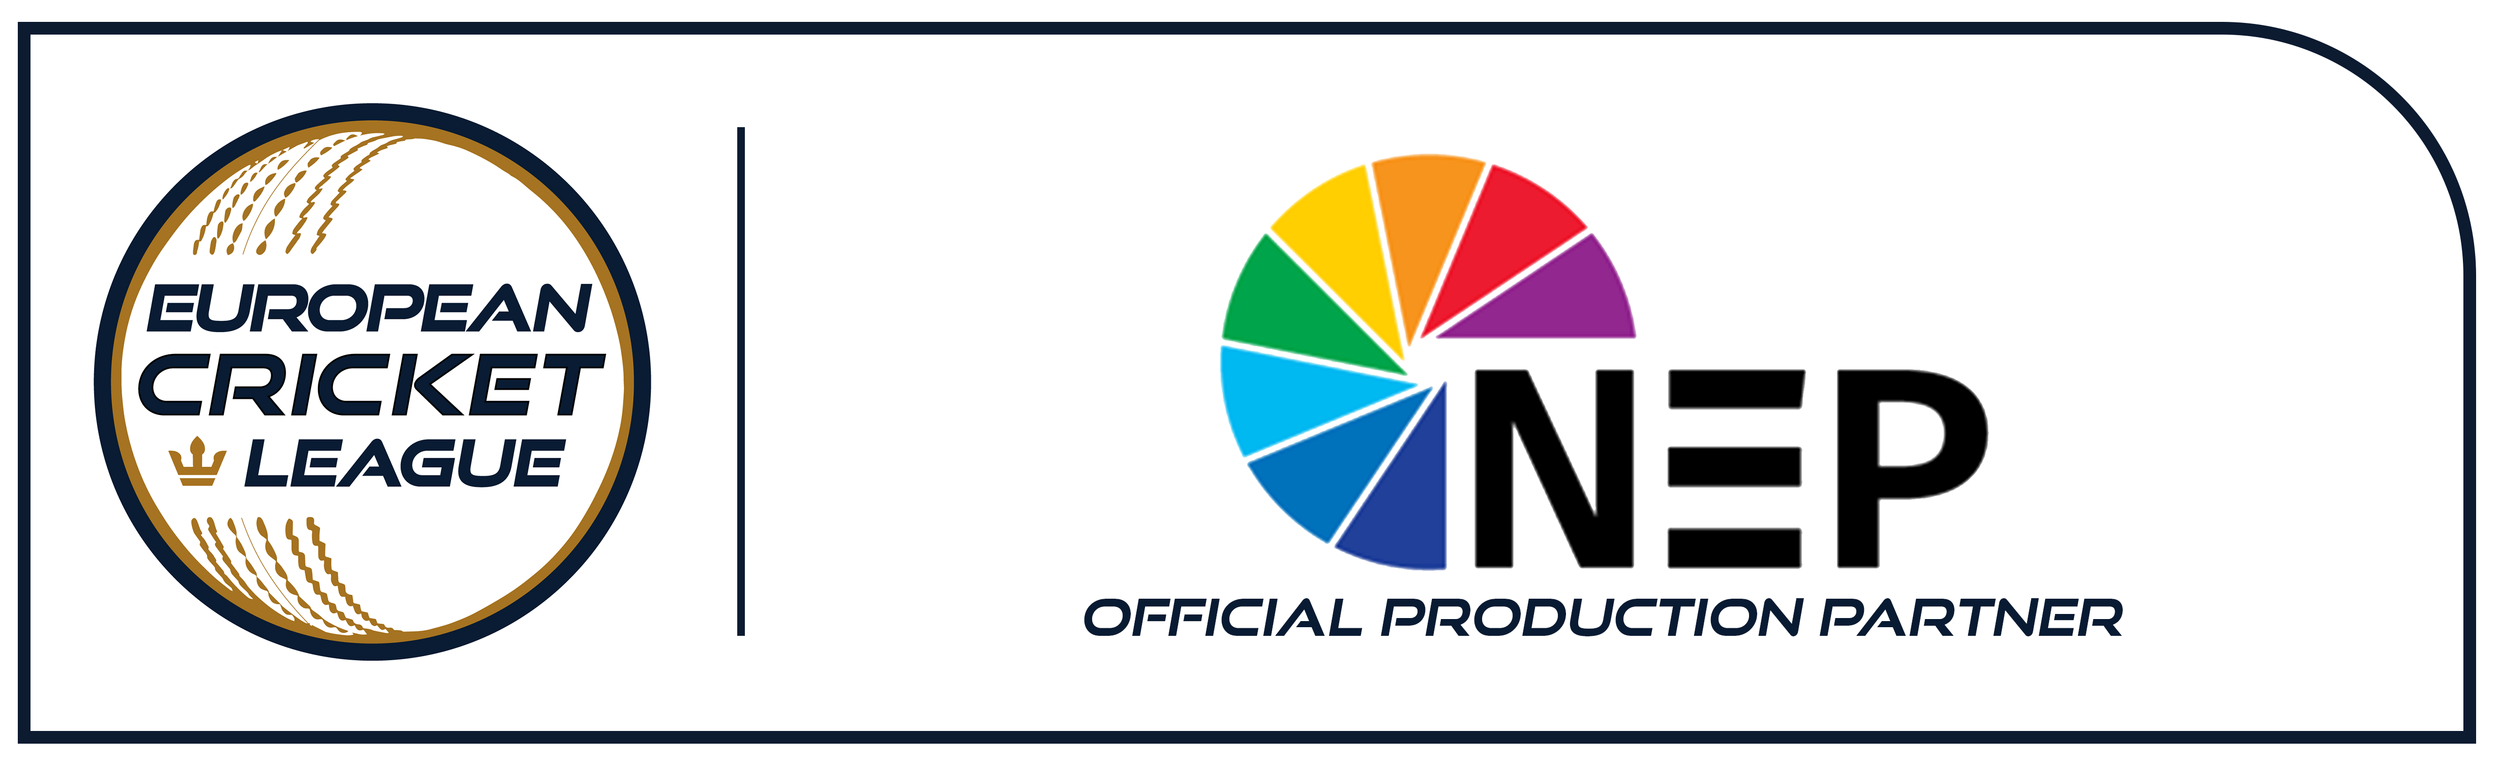 NEP Production Partner.png